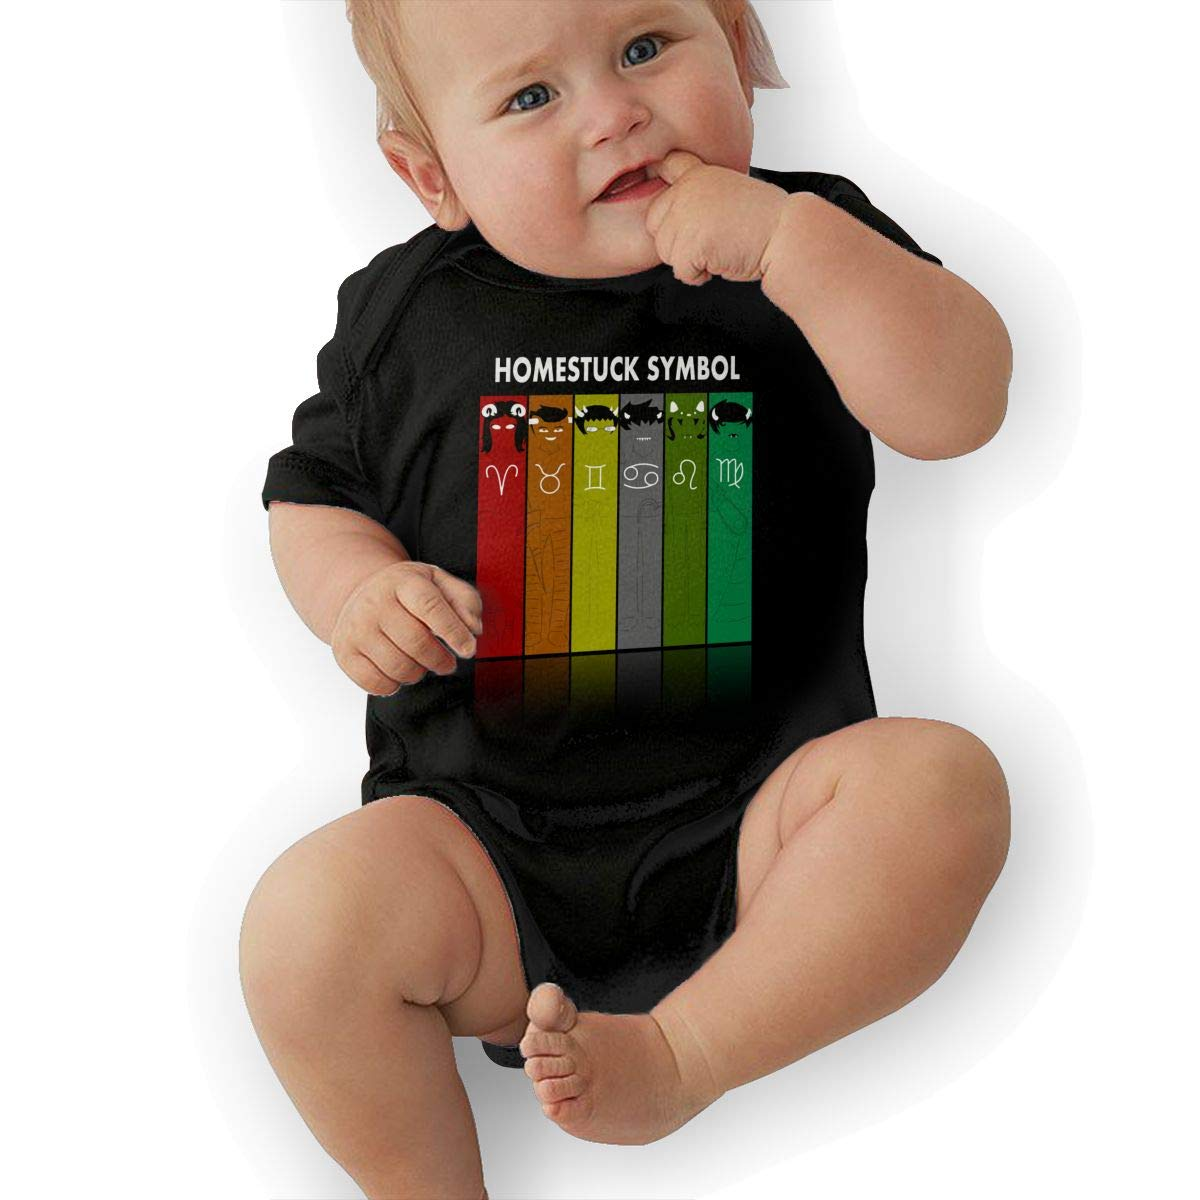 LuckyTagy Homestuck Symbol Unisex Fashion Infant Romper Baby BoyPlaysuit Black